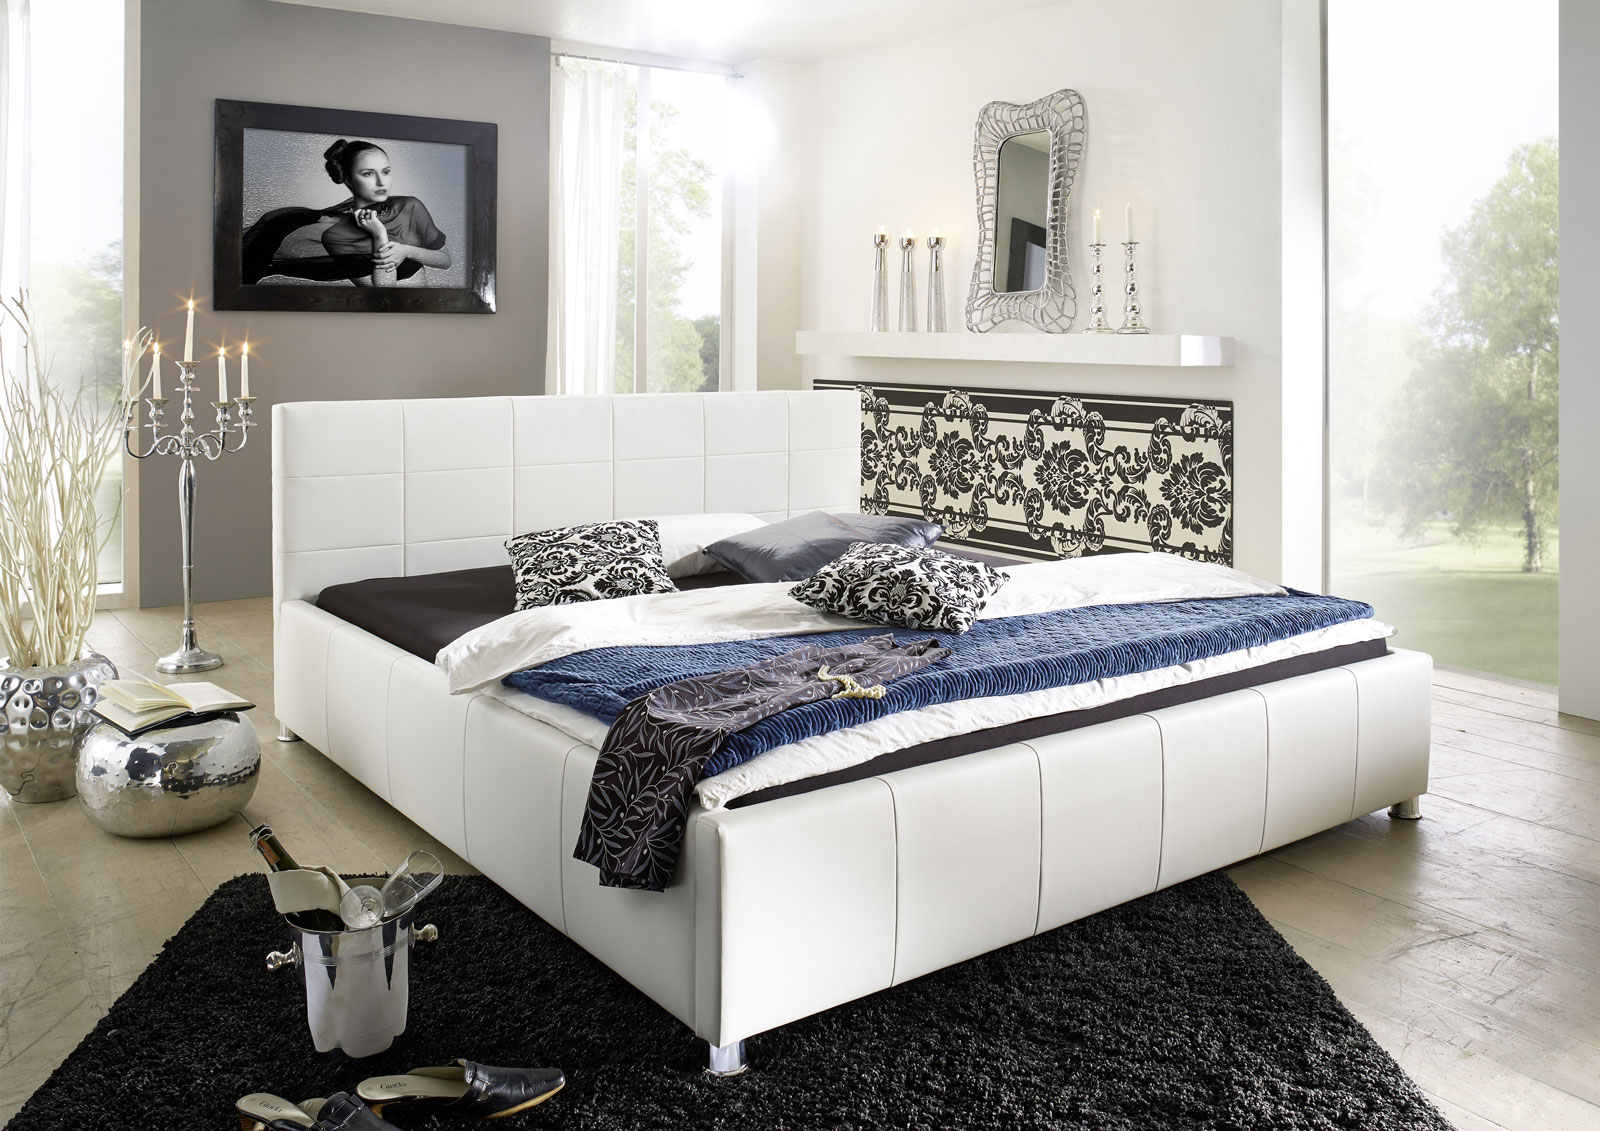 sam polster bett 140 x 200 cm wei kira auf lager. Black Bedroom Furniture Sets. Home Design Ideas